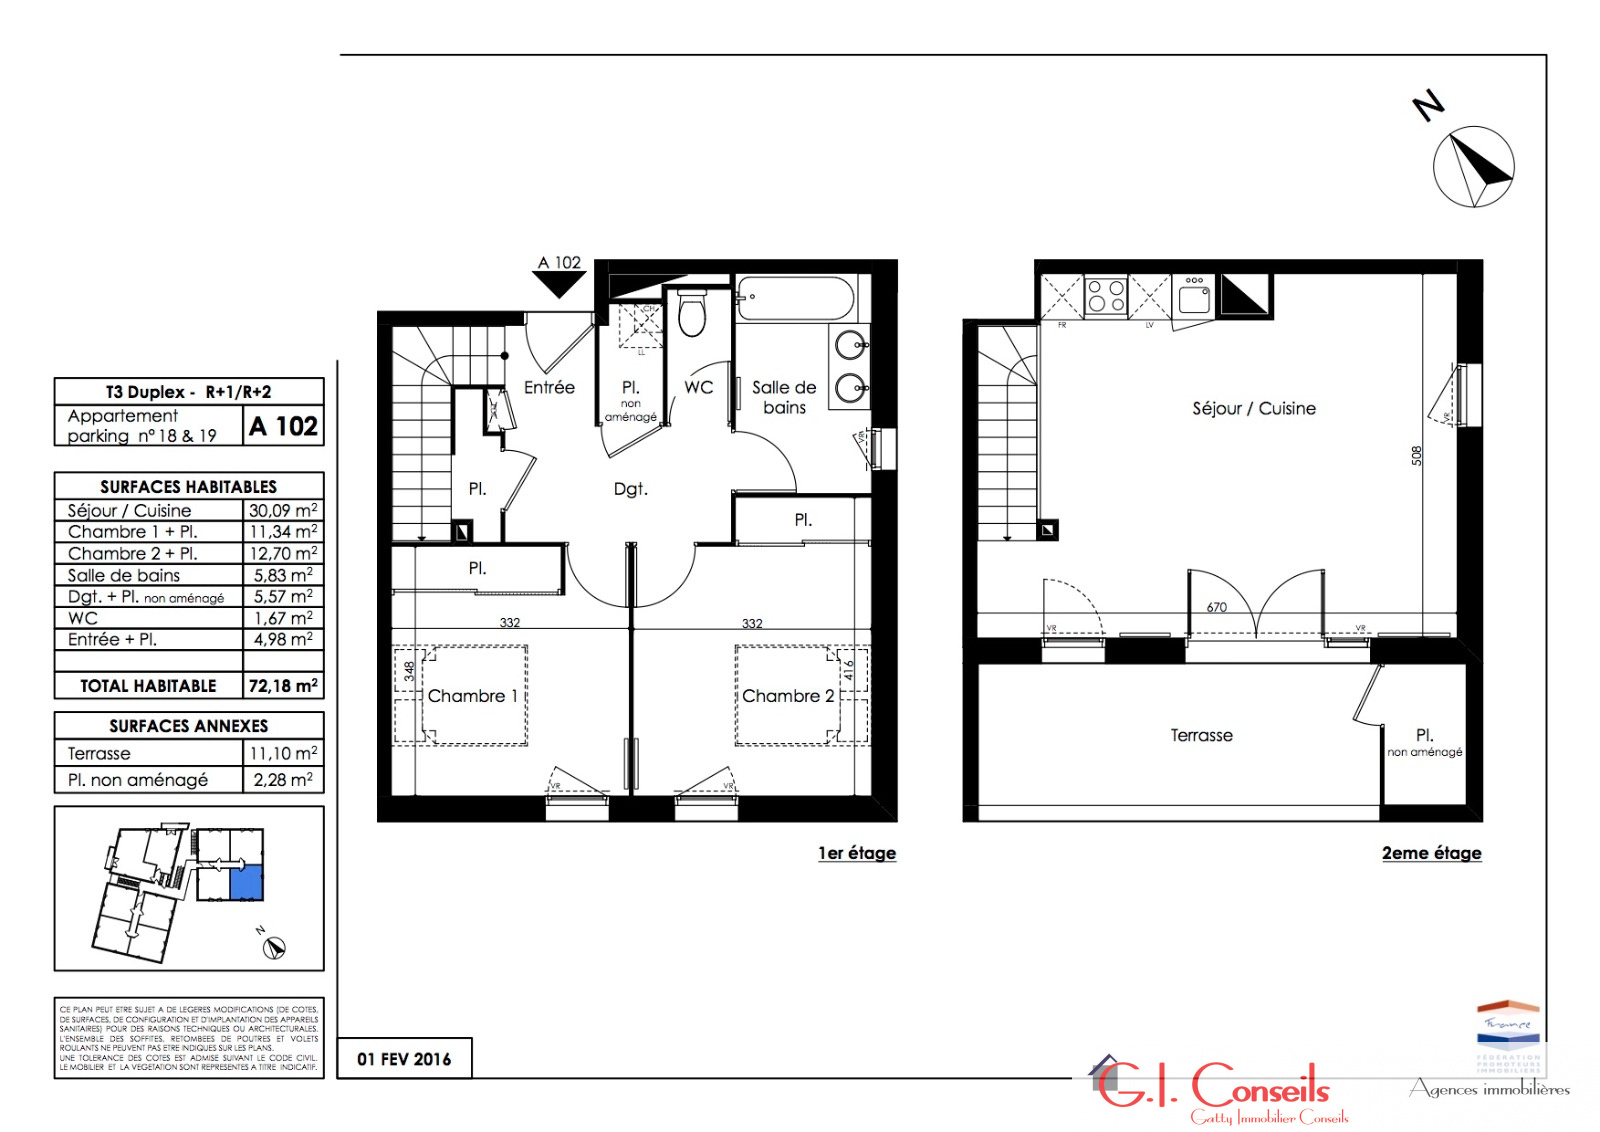 Vente appartement t3 en neuf for Appartement t3 neuf